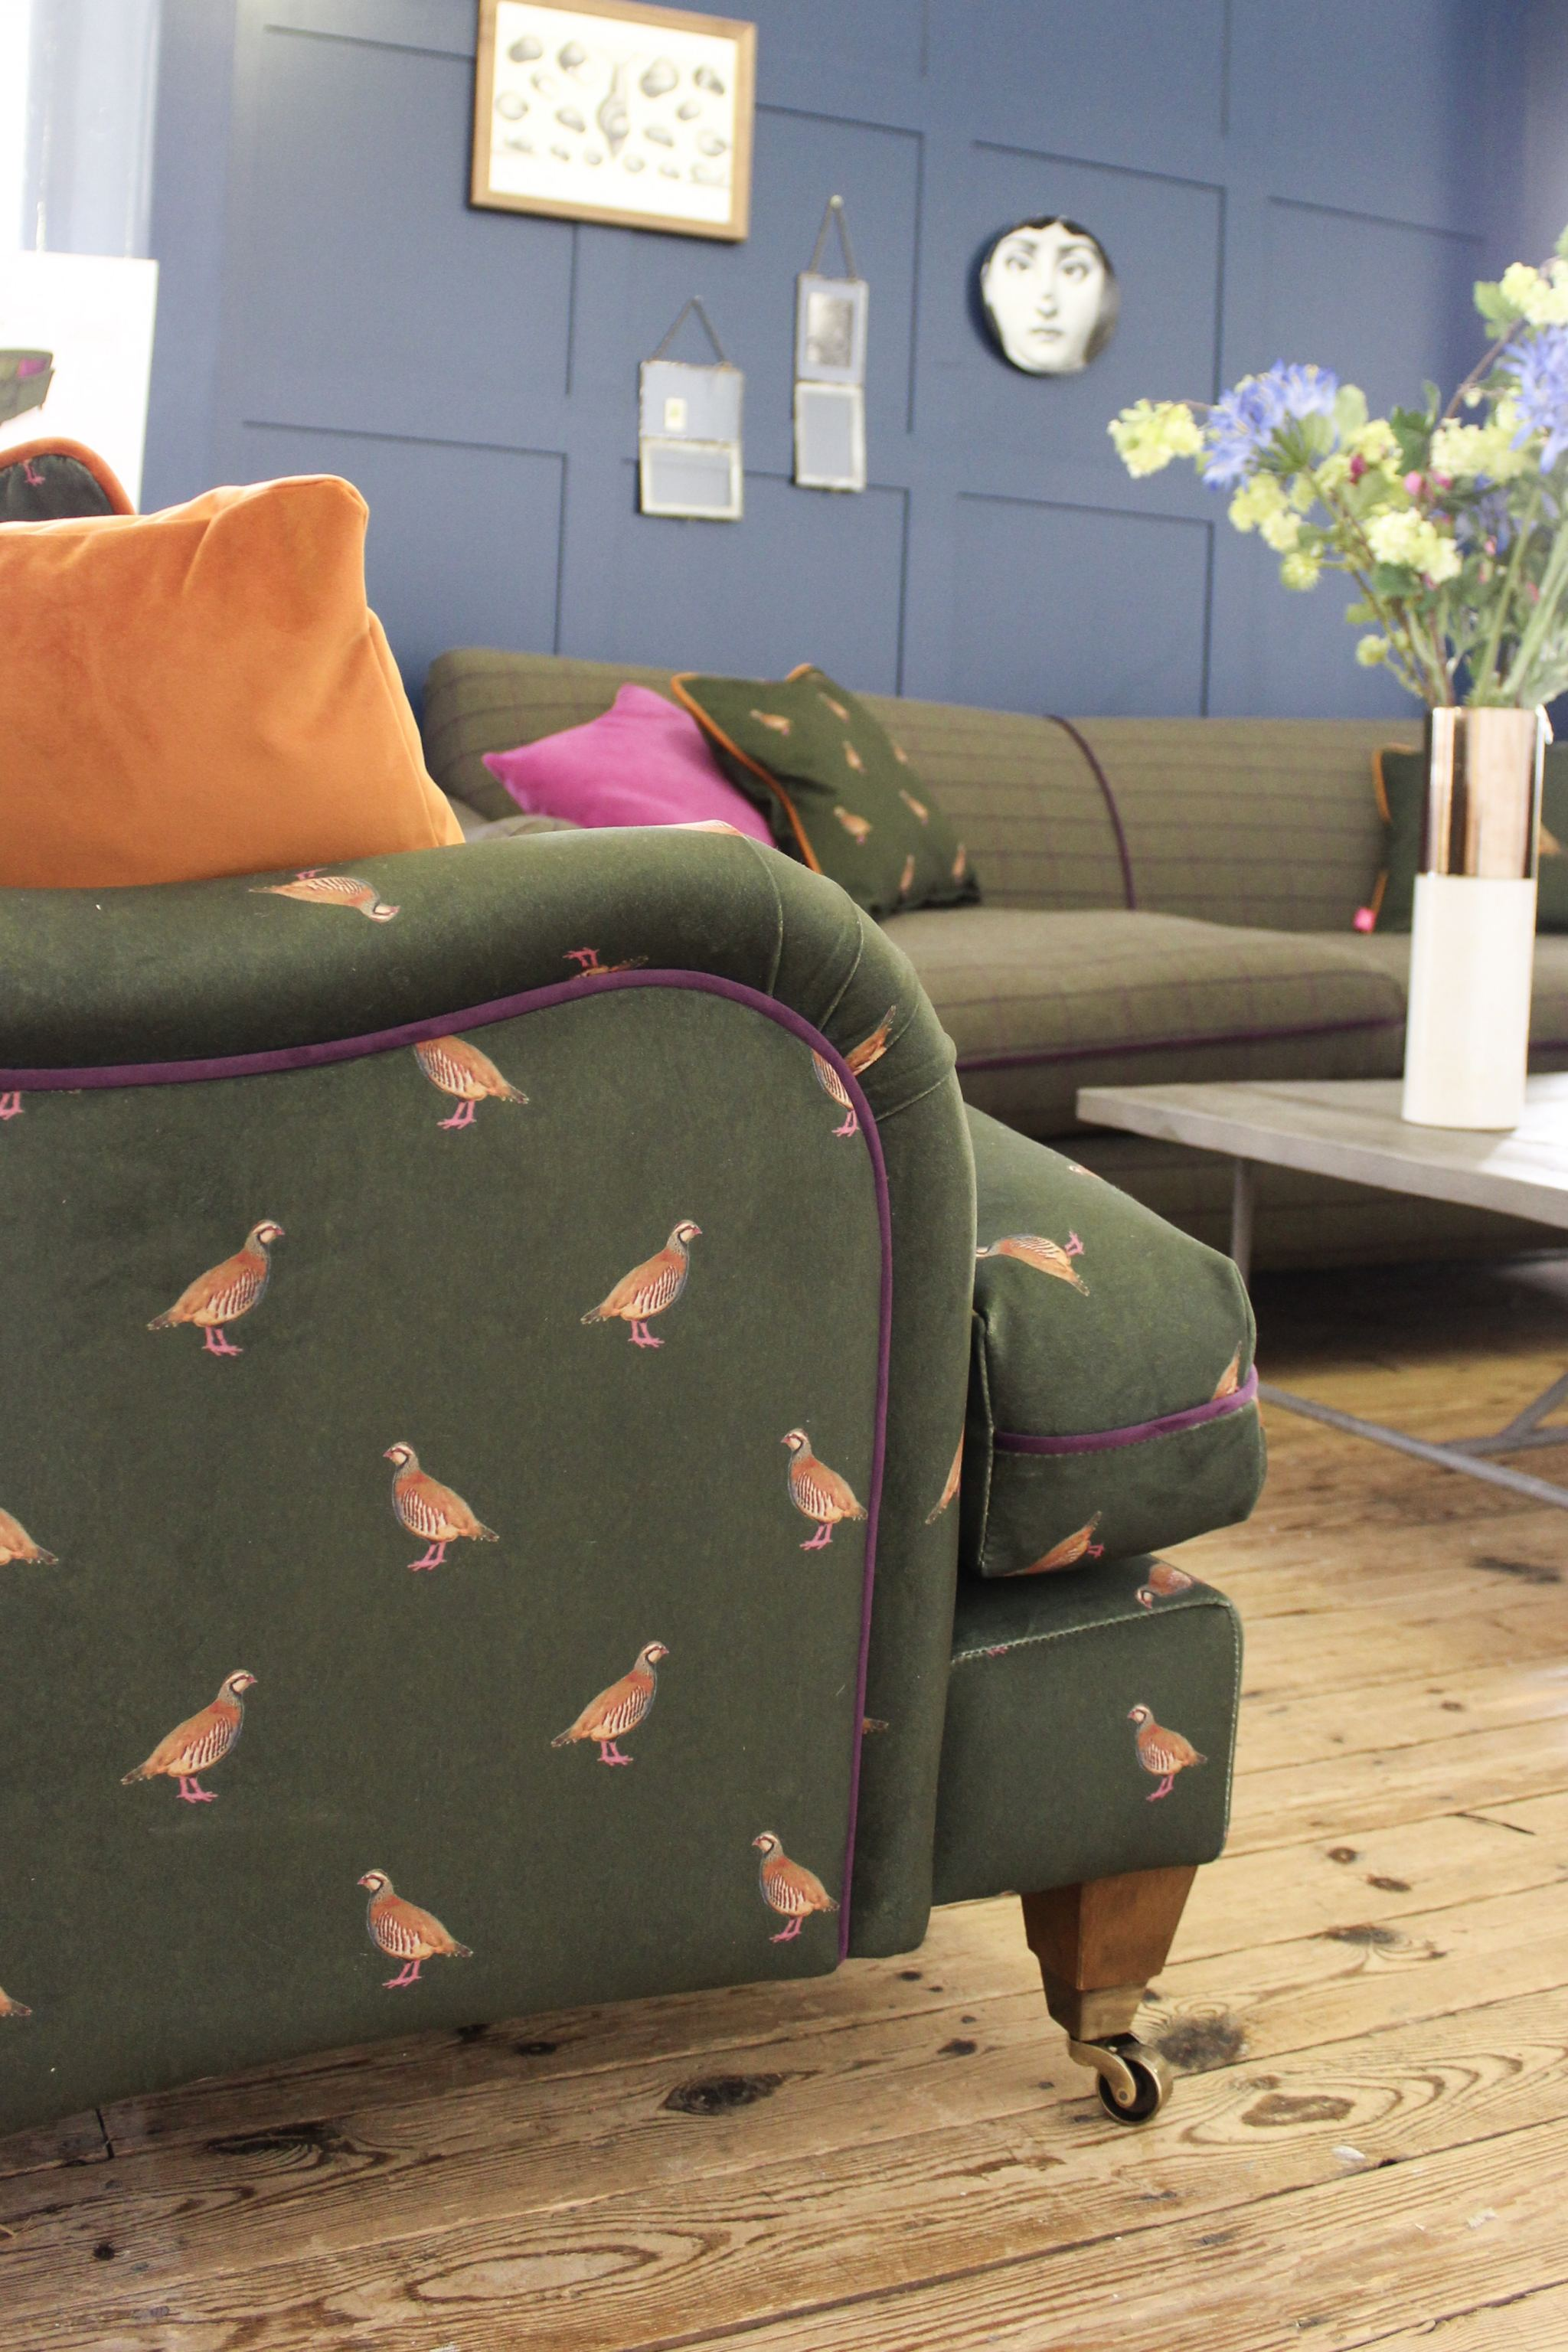 Peachy Joules Dfs Collection Within These Walls Andrewgaddart Wooden Chair Designs For Living Room Andrewgaddartcom